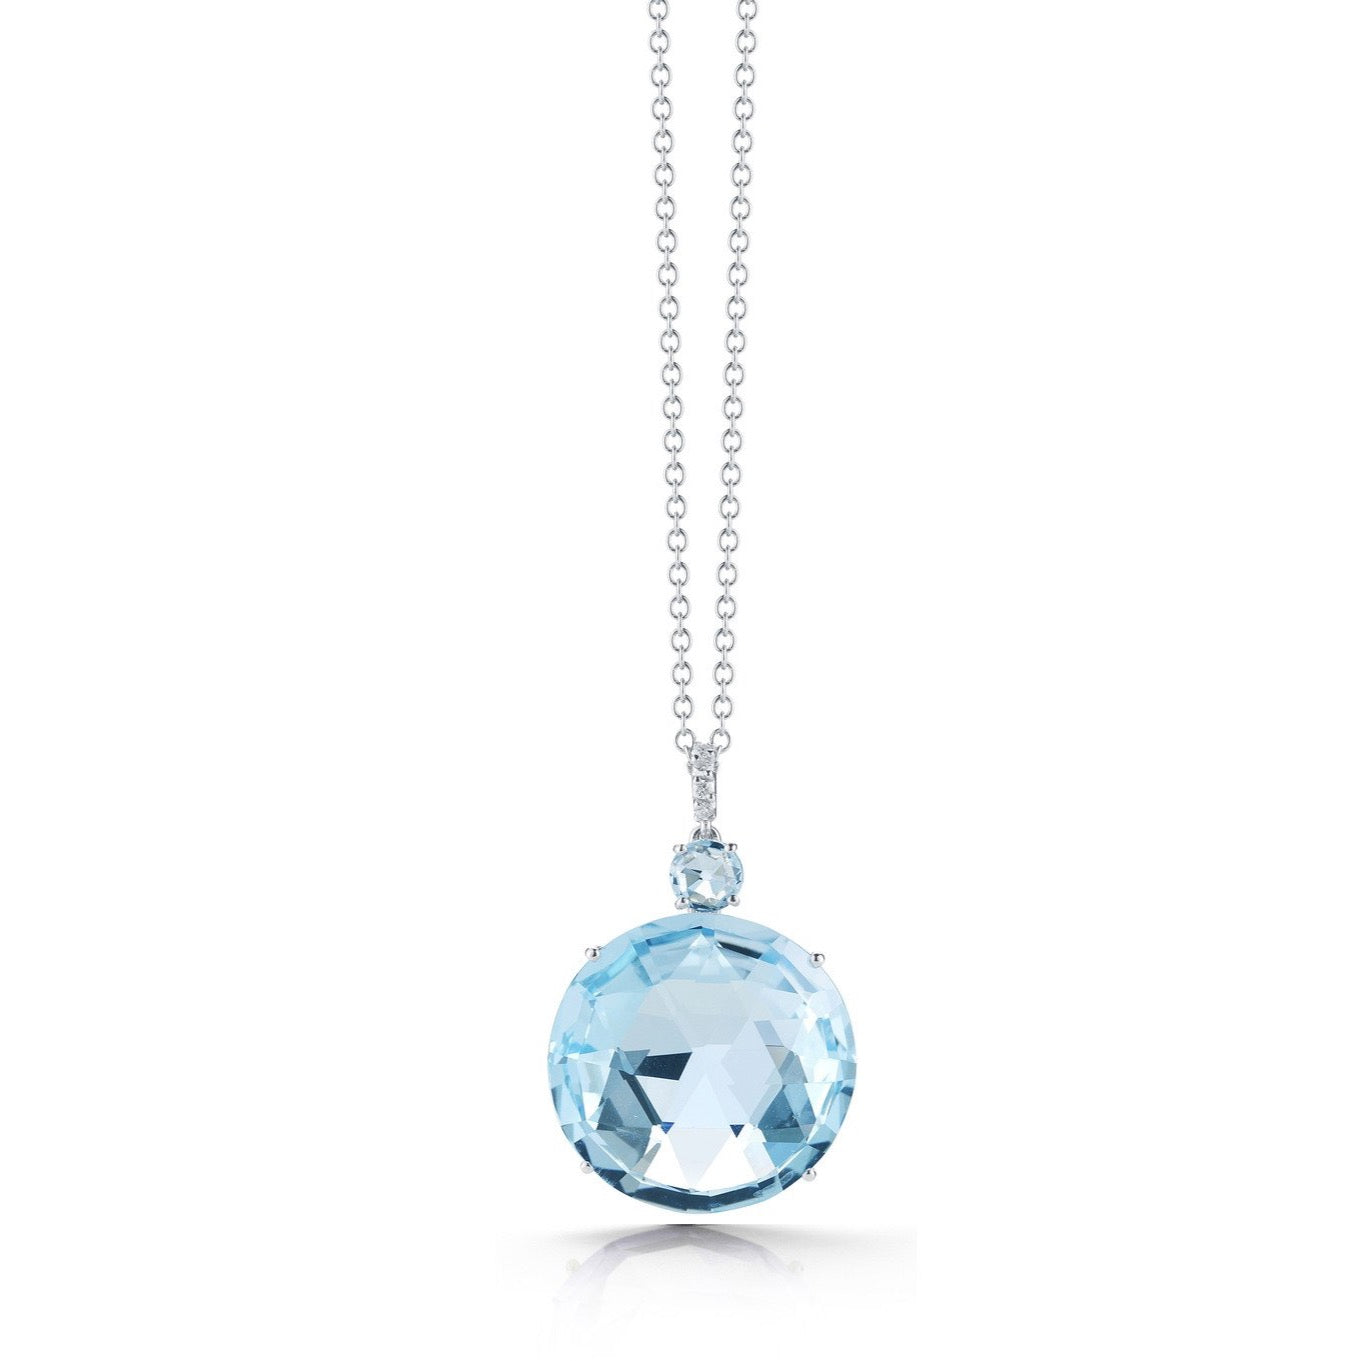 a-furst-lilies-pendant-necklace-blue-topaz-diamonds-white-gold